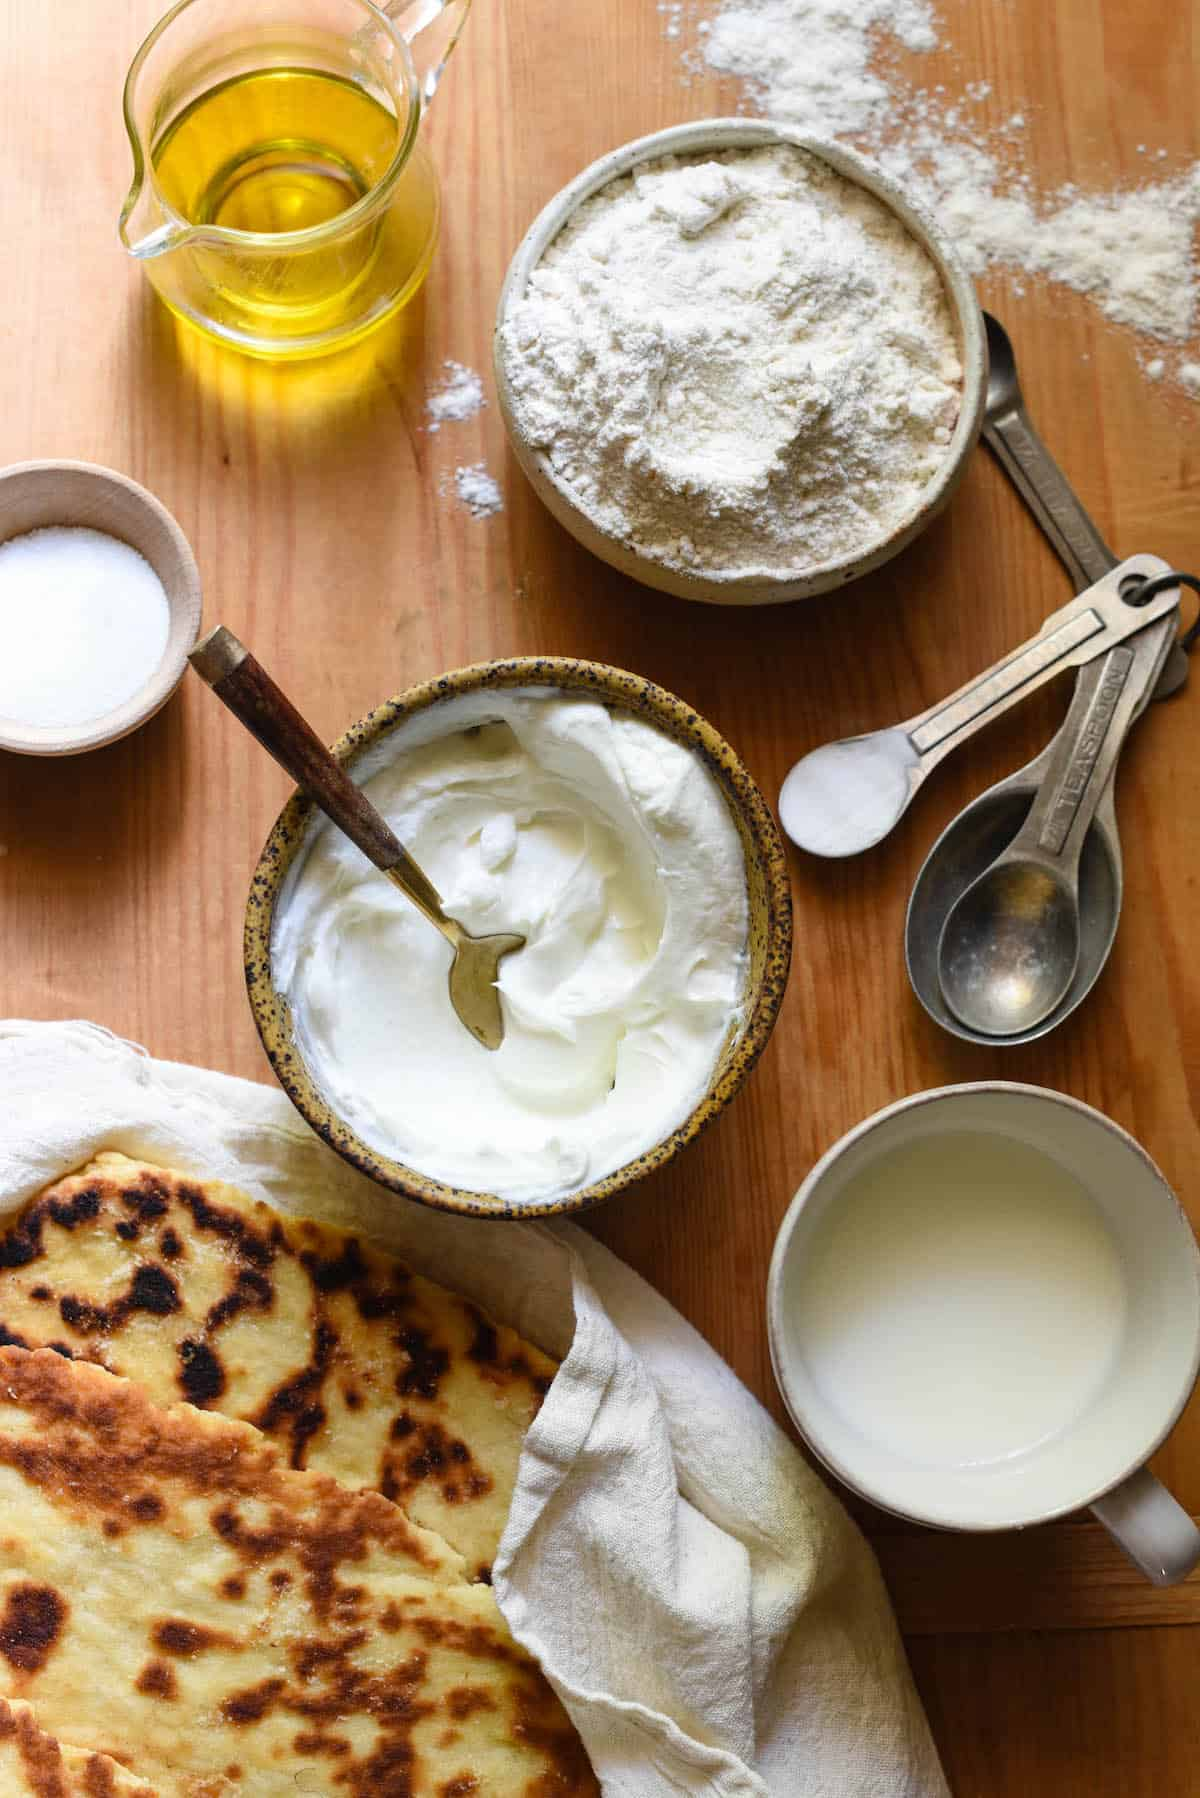 Overhead image of ingredients for homemade flat bread - olive oil, flour, baking soda, yogurt, milk and sugar. Finished flatbreads alongside.